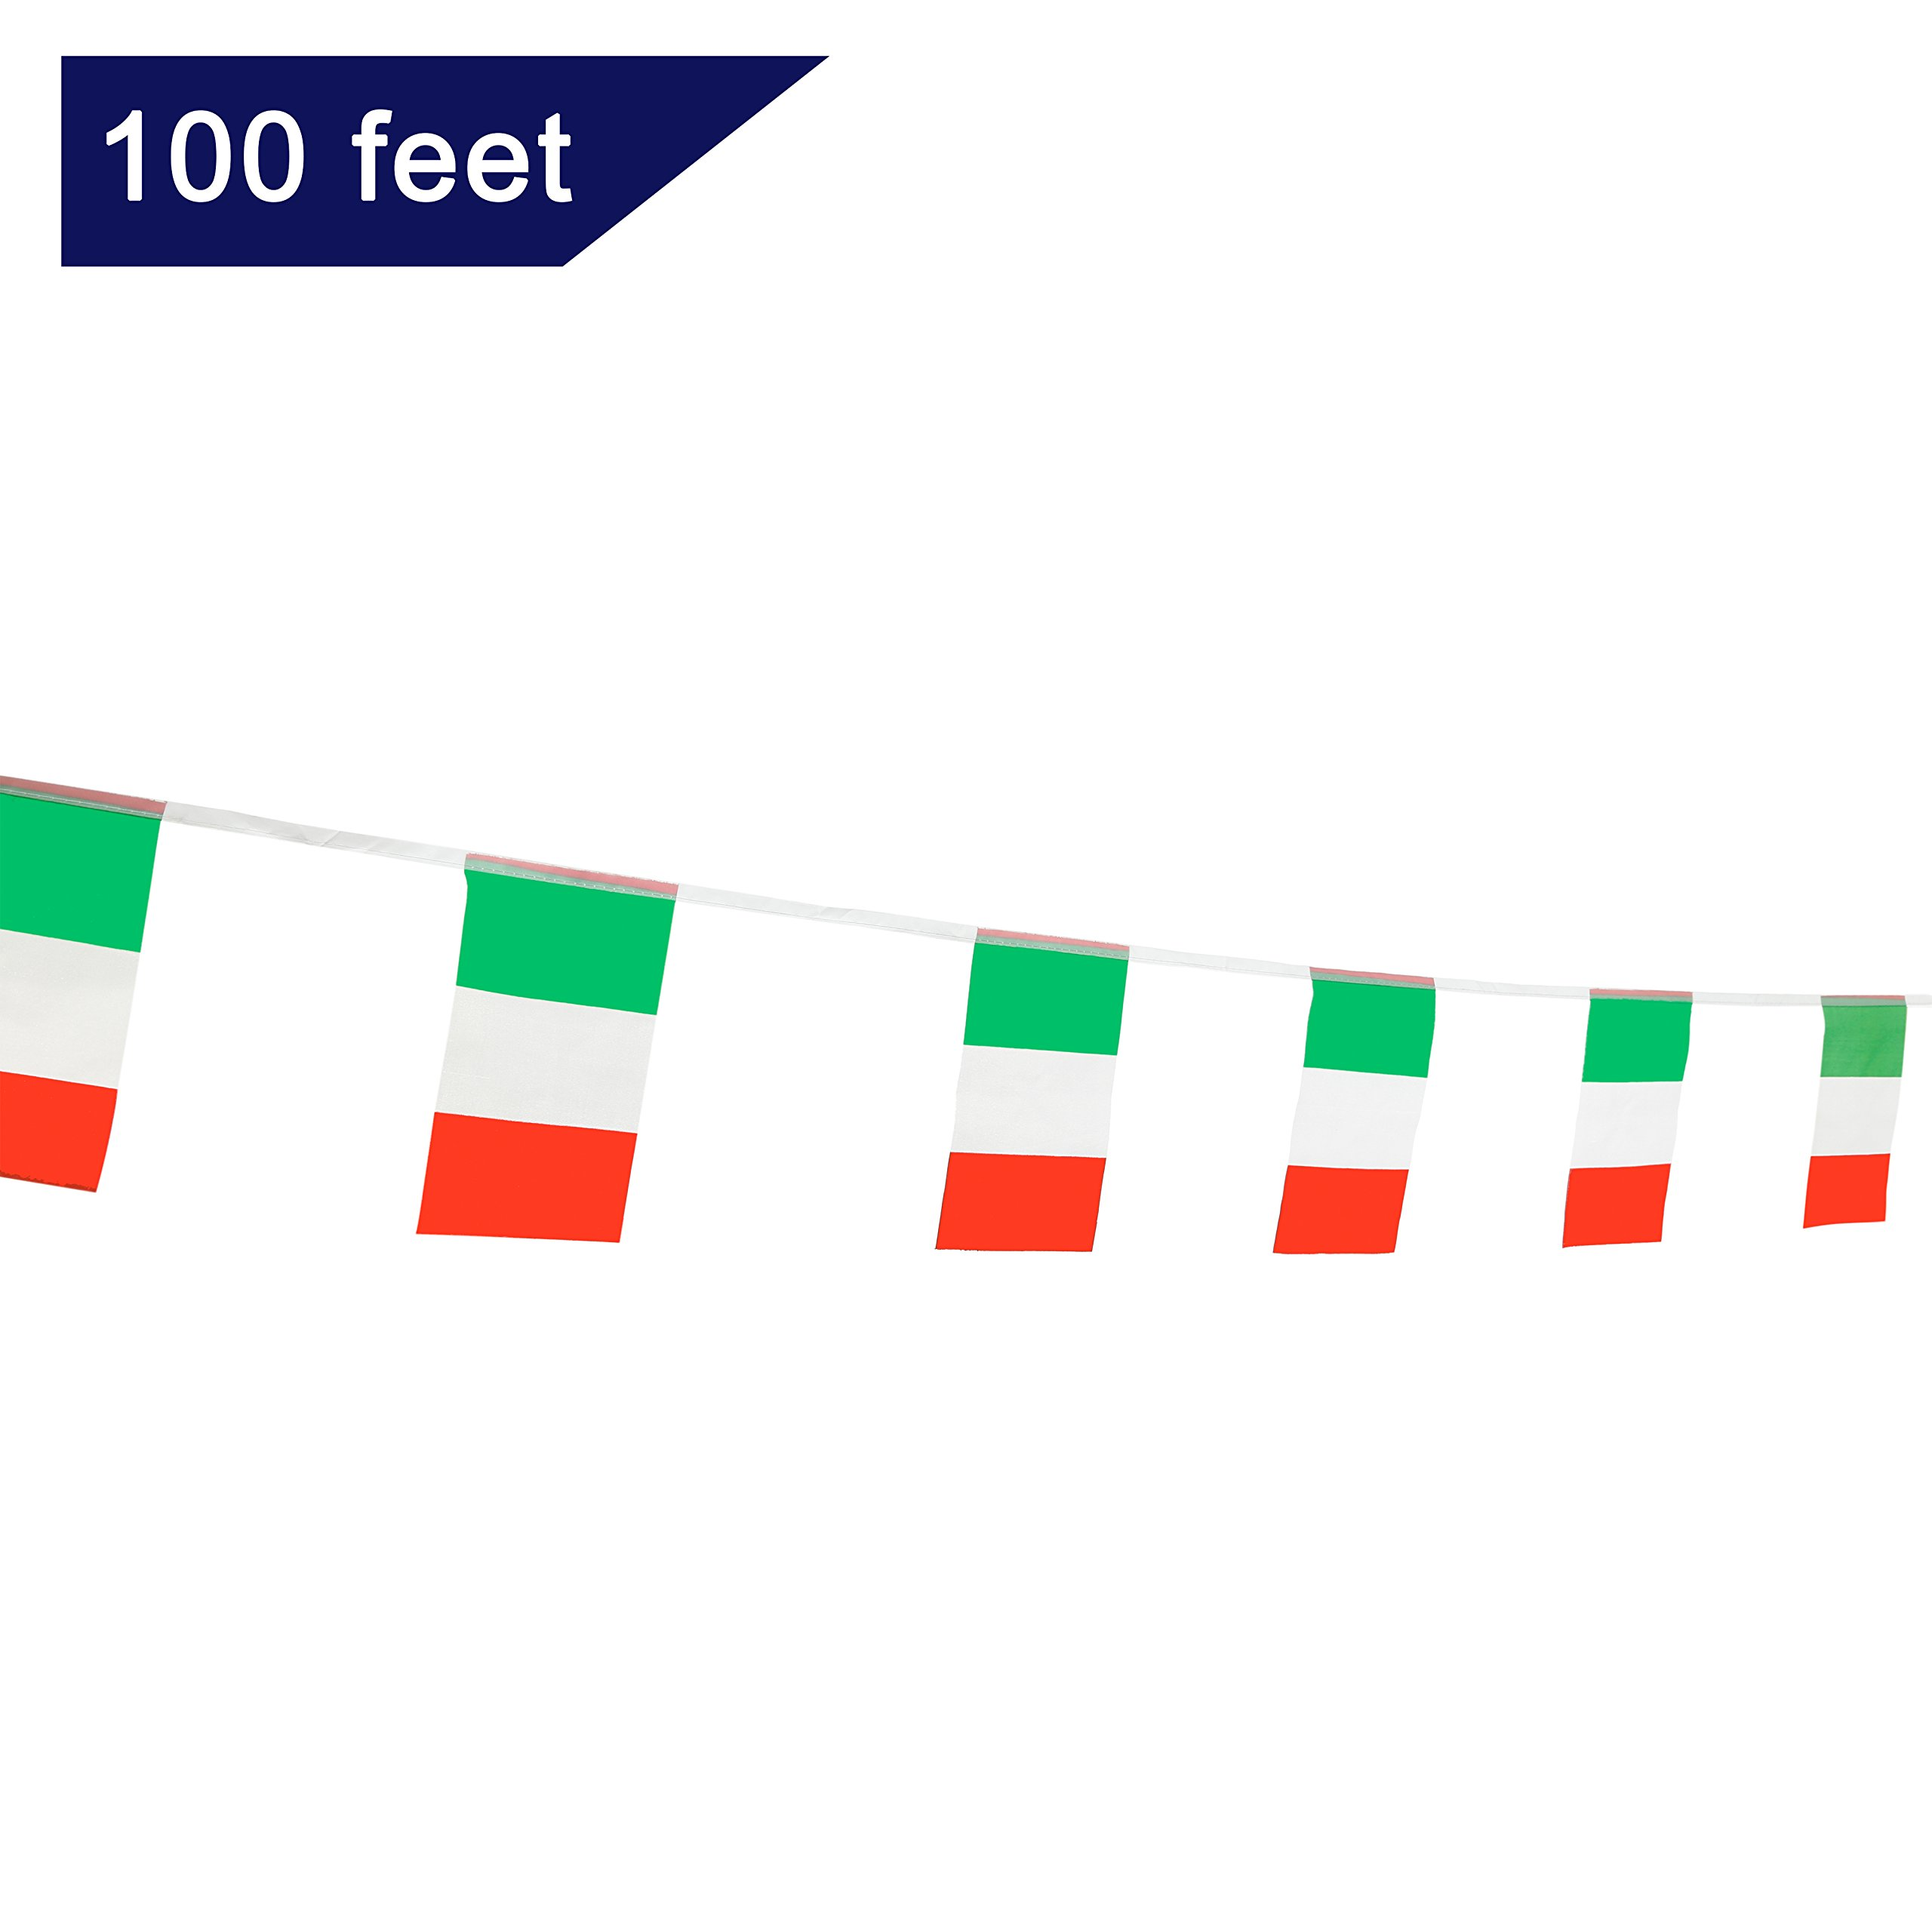 TSMD 100 Feet Italy Italian Flag,76Pcs Indoor/Outdoor National Country Flags Banner String,Party Decorations Supplies For Olympics,Bar,World Cup,International Festival(8.2'' x 5.5''